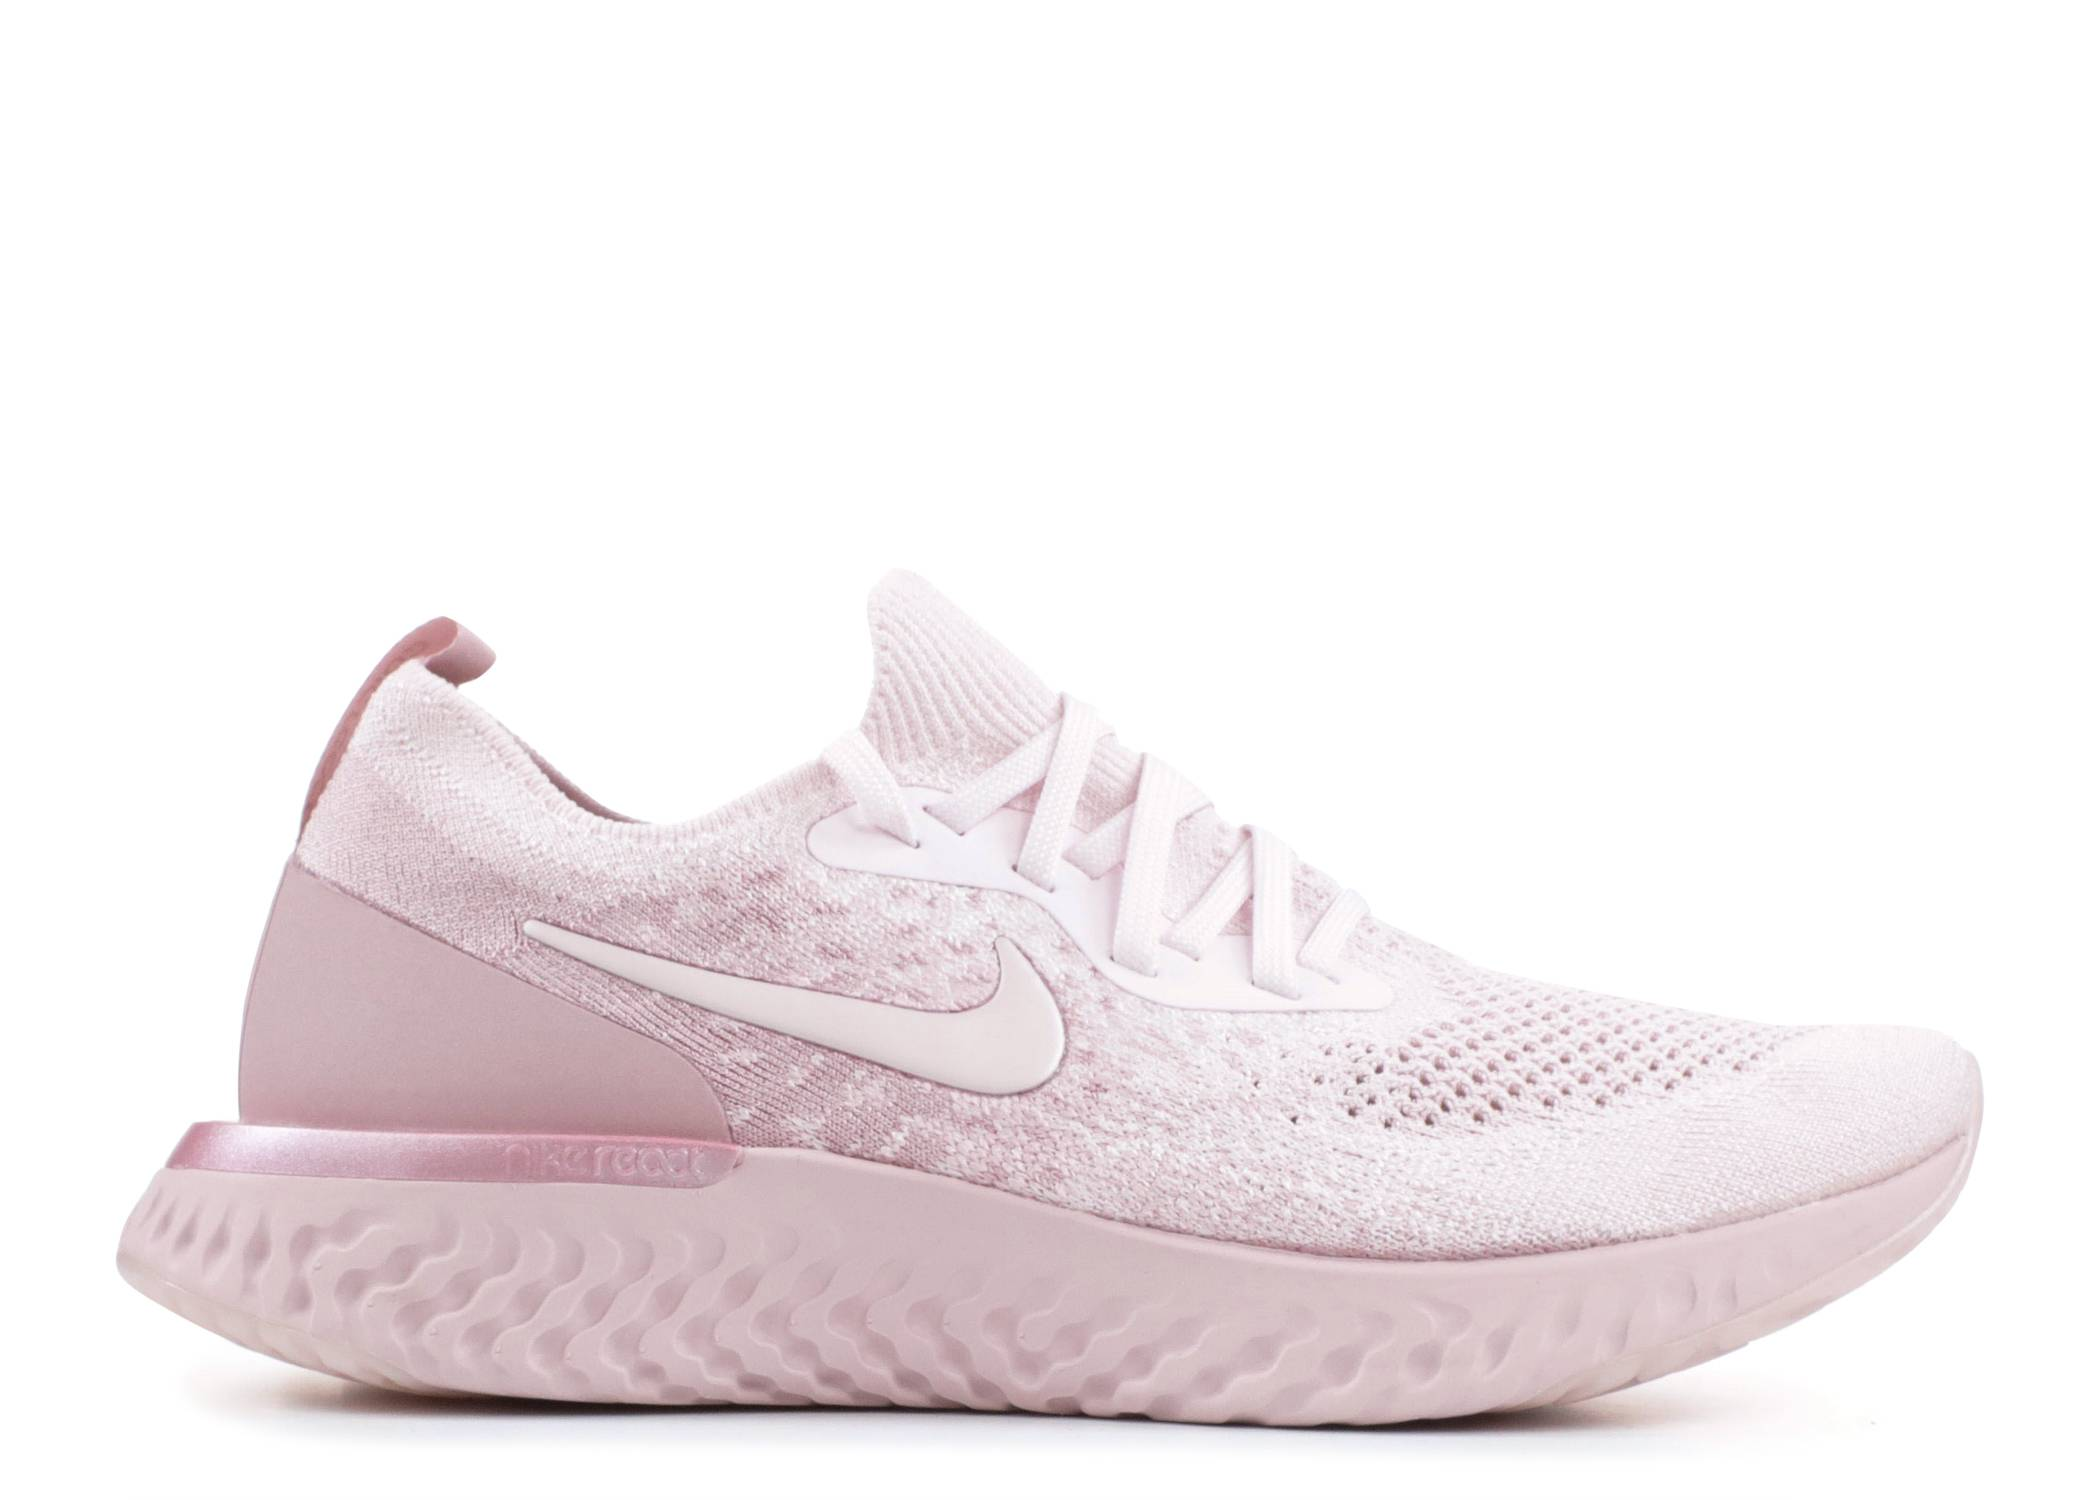 low priced 6bcf0 5a1bc WMNS Nike Epic React Flyknit